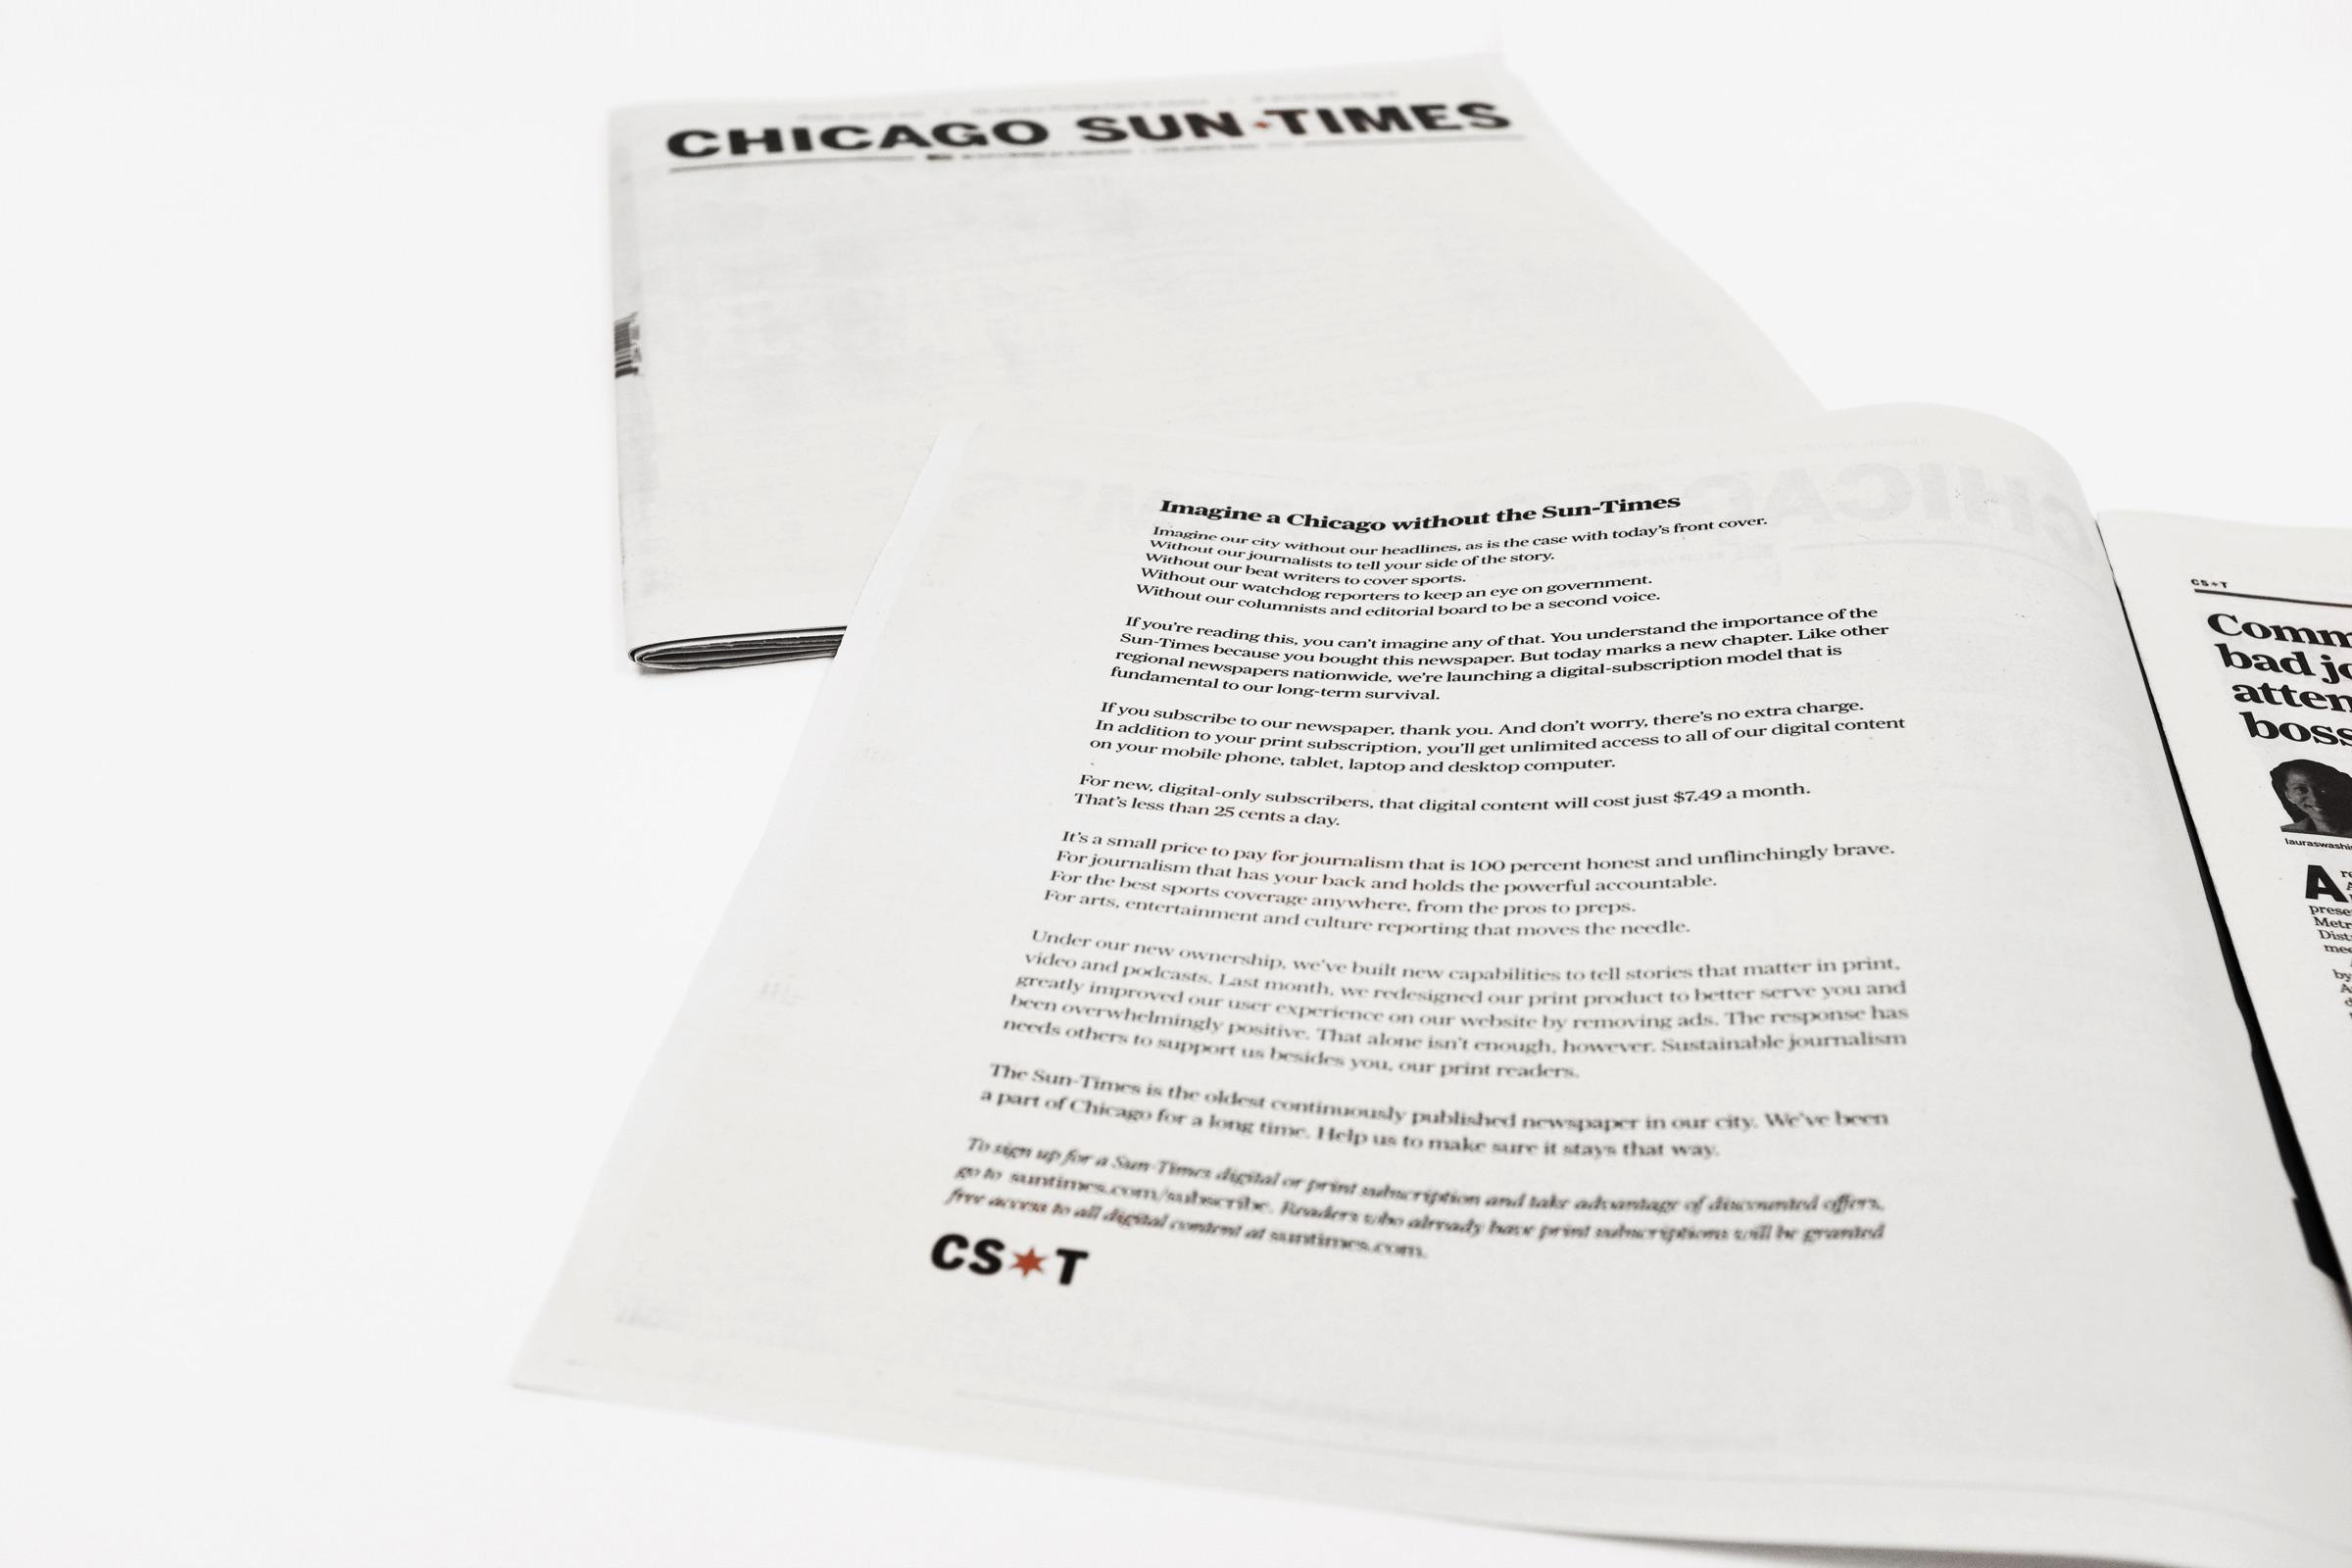 Chicago Sun Times Print Ad - The Blank Newspaper Cover